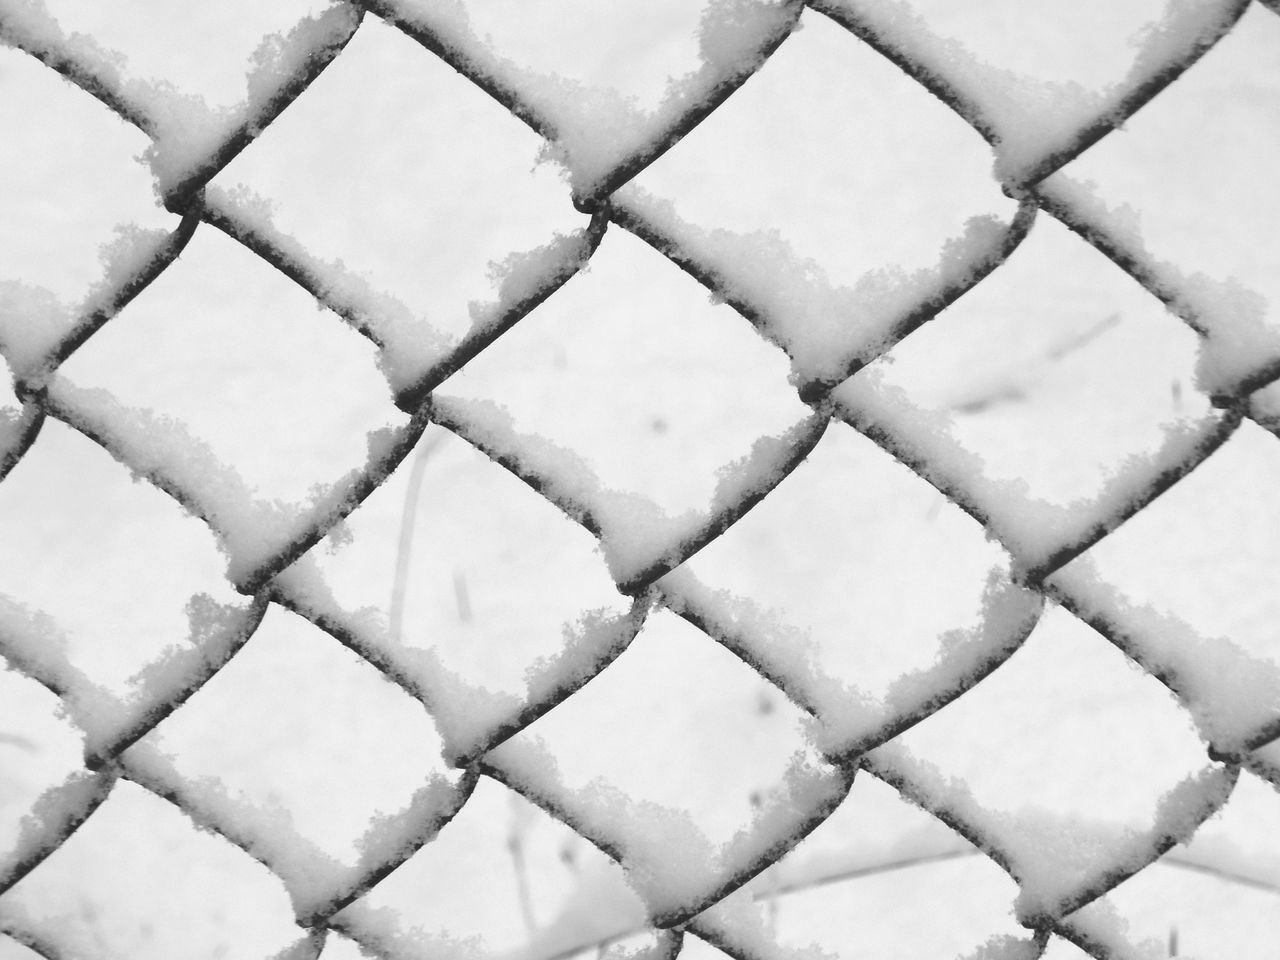 snowy pattern Backgrounds Bend Bent Chainlink Fence Chair Diamond Pattern Diamonds Equality Feburary Fence Gate Geometric Metal Pattern Patterns & Textures Same  Shape Snow Snow Covered Washington State White White Background Winter